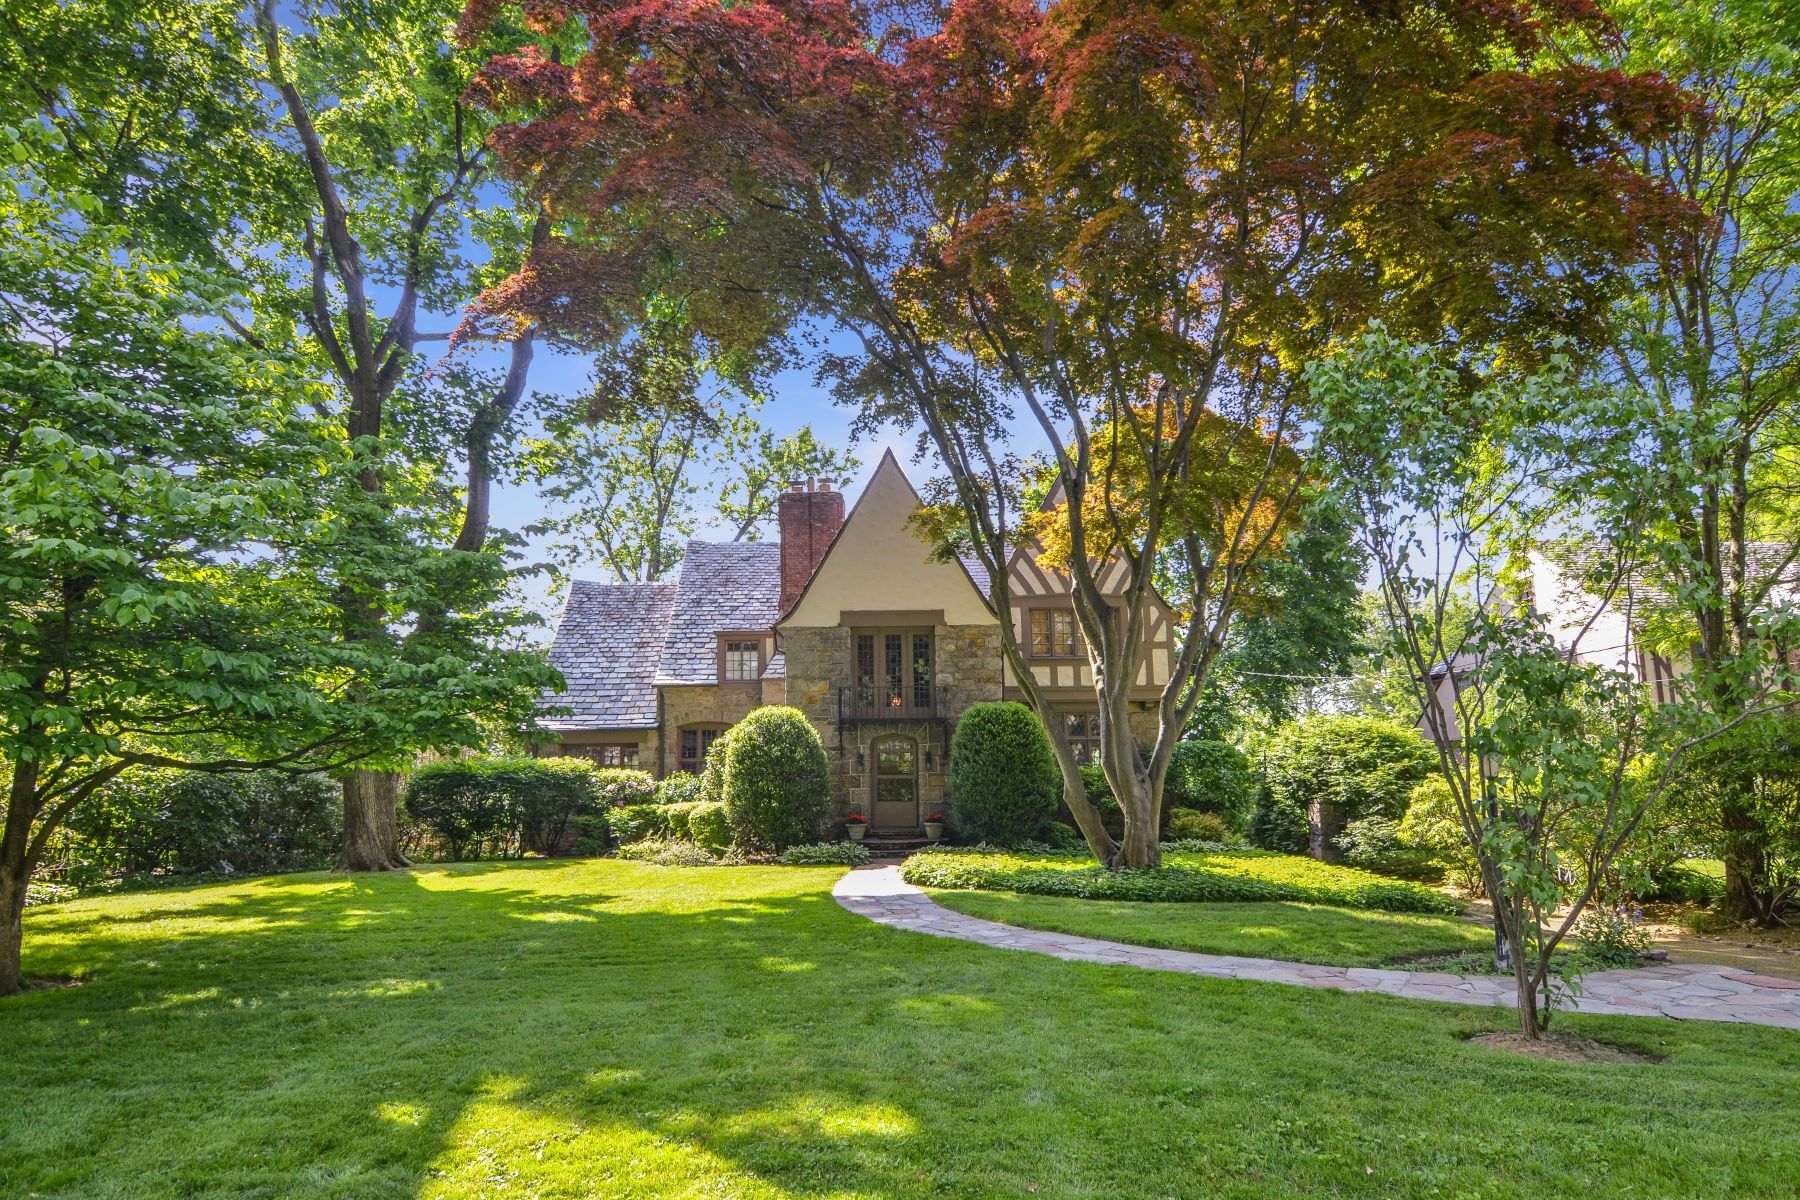 Single Family Home for Sale at Majestic Tudor in Prime Fox Meadow Neighborhood 21 Kensington Road Scarsdale, New York 10583 United States